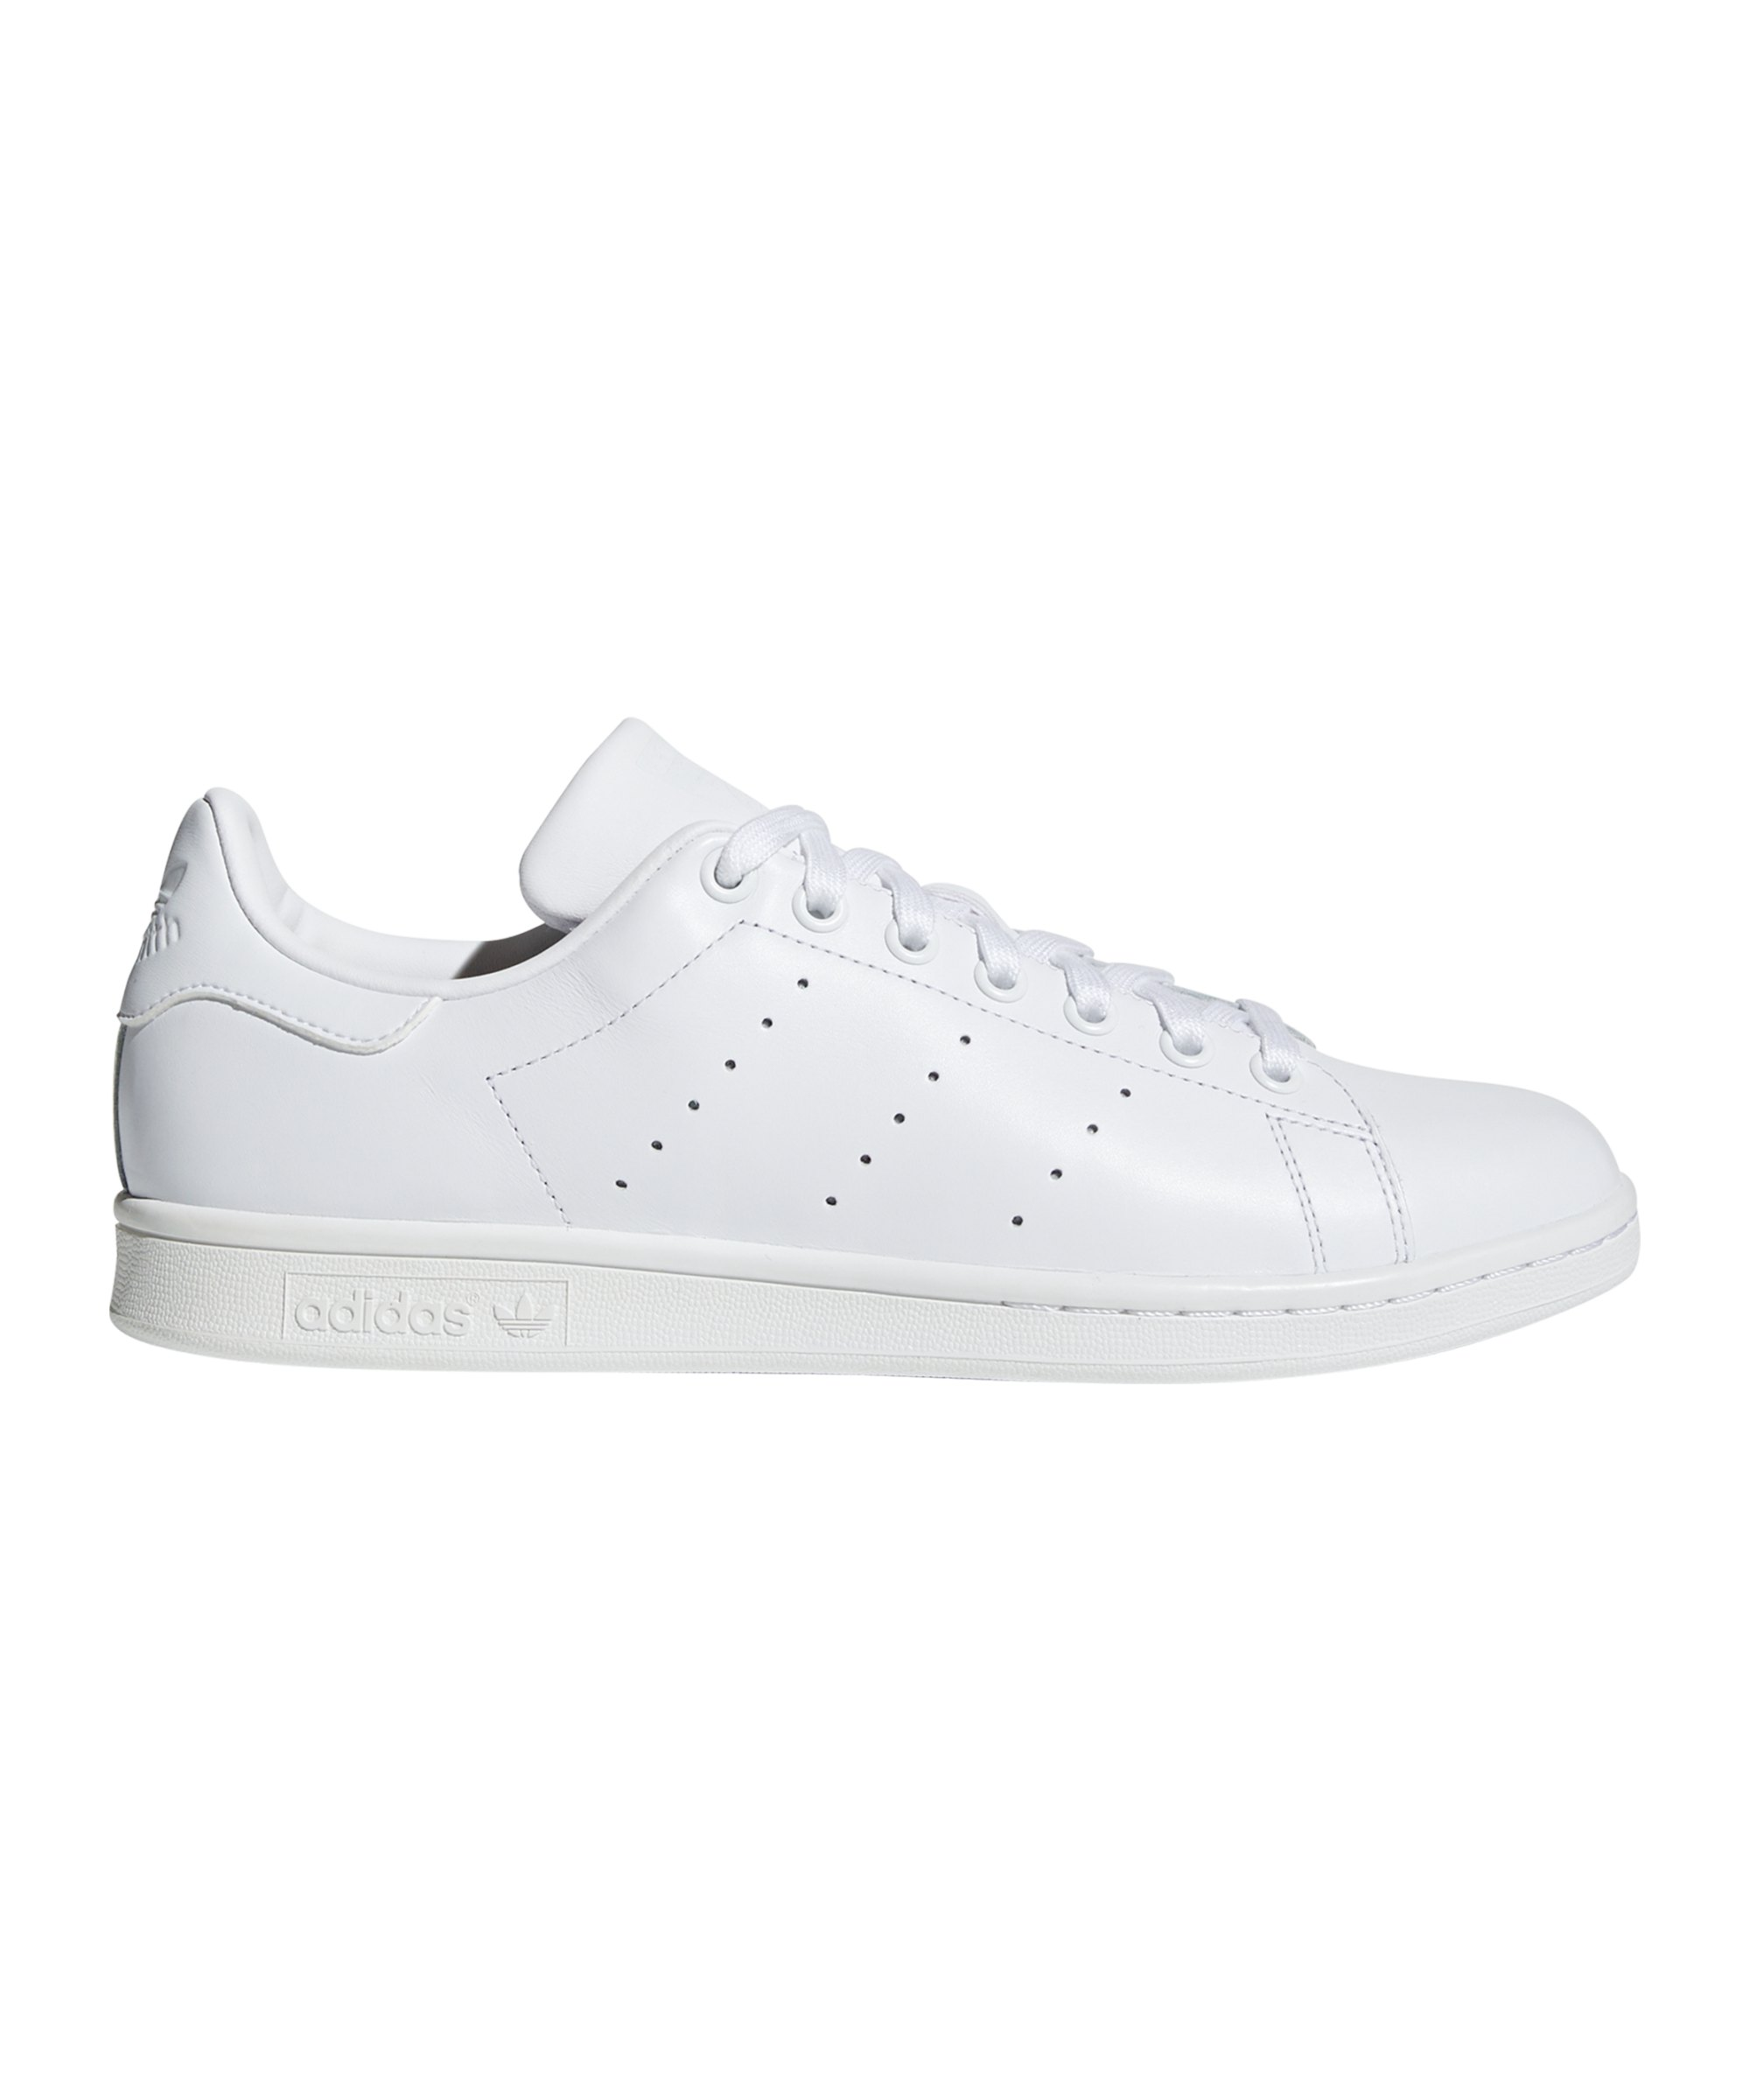 adidas originals stan smith sneaker weiss shoe schuh. Black Bedroom Furniture Sets. Home Design Ideas